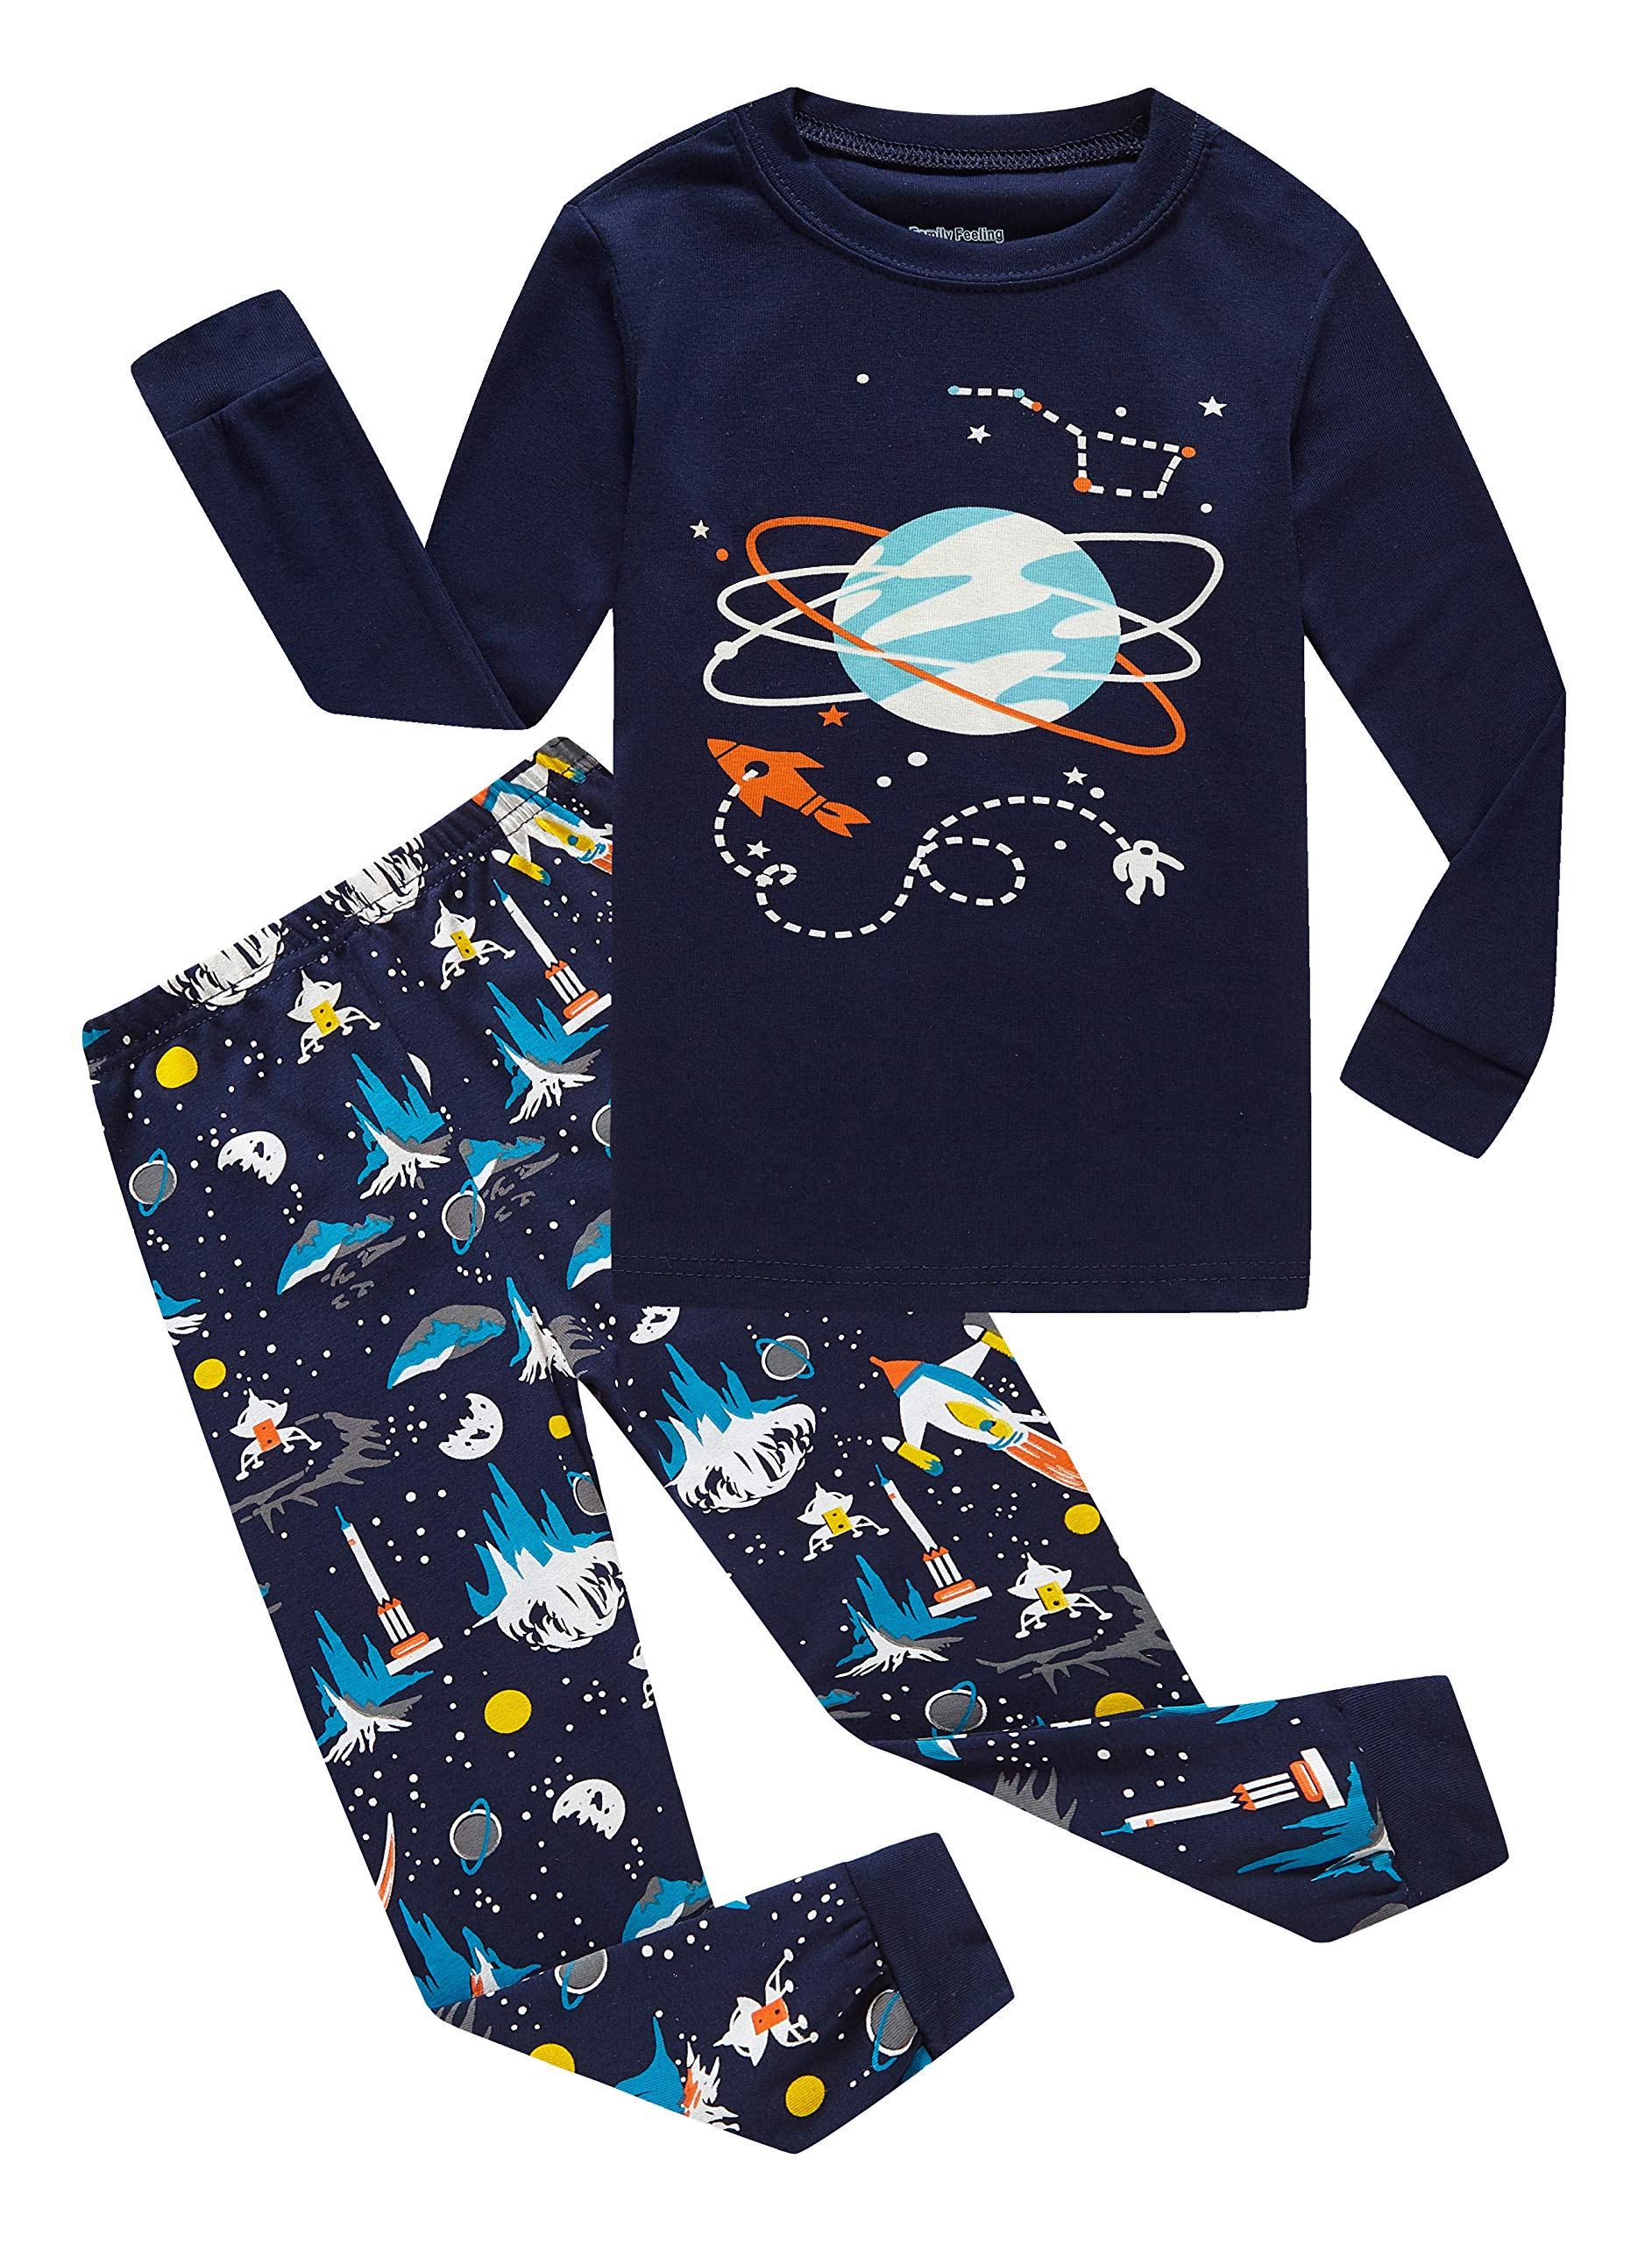 Family Feeling Space Big Boys Long Sleeve Pajamas Sets 100% Cotton Pyjamas Kids Pjs Size 14 Blue